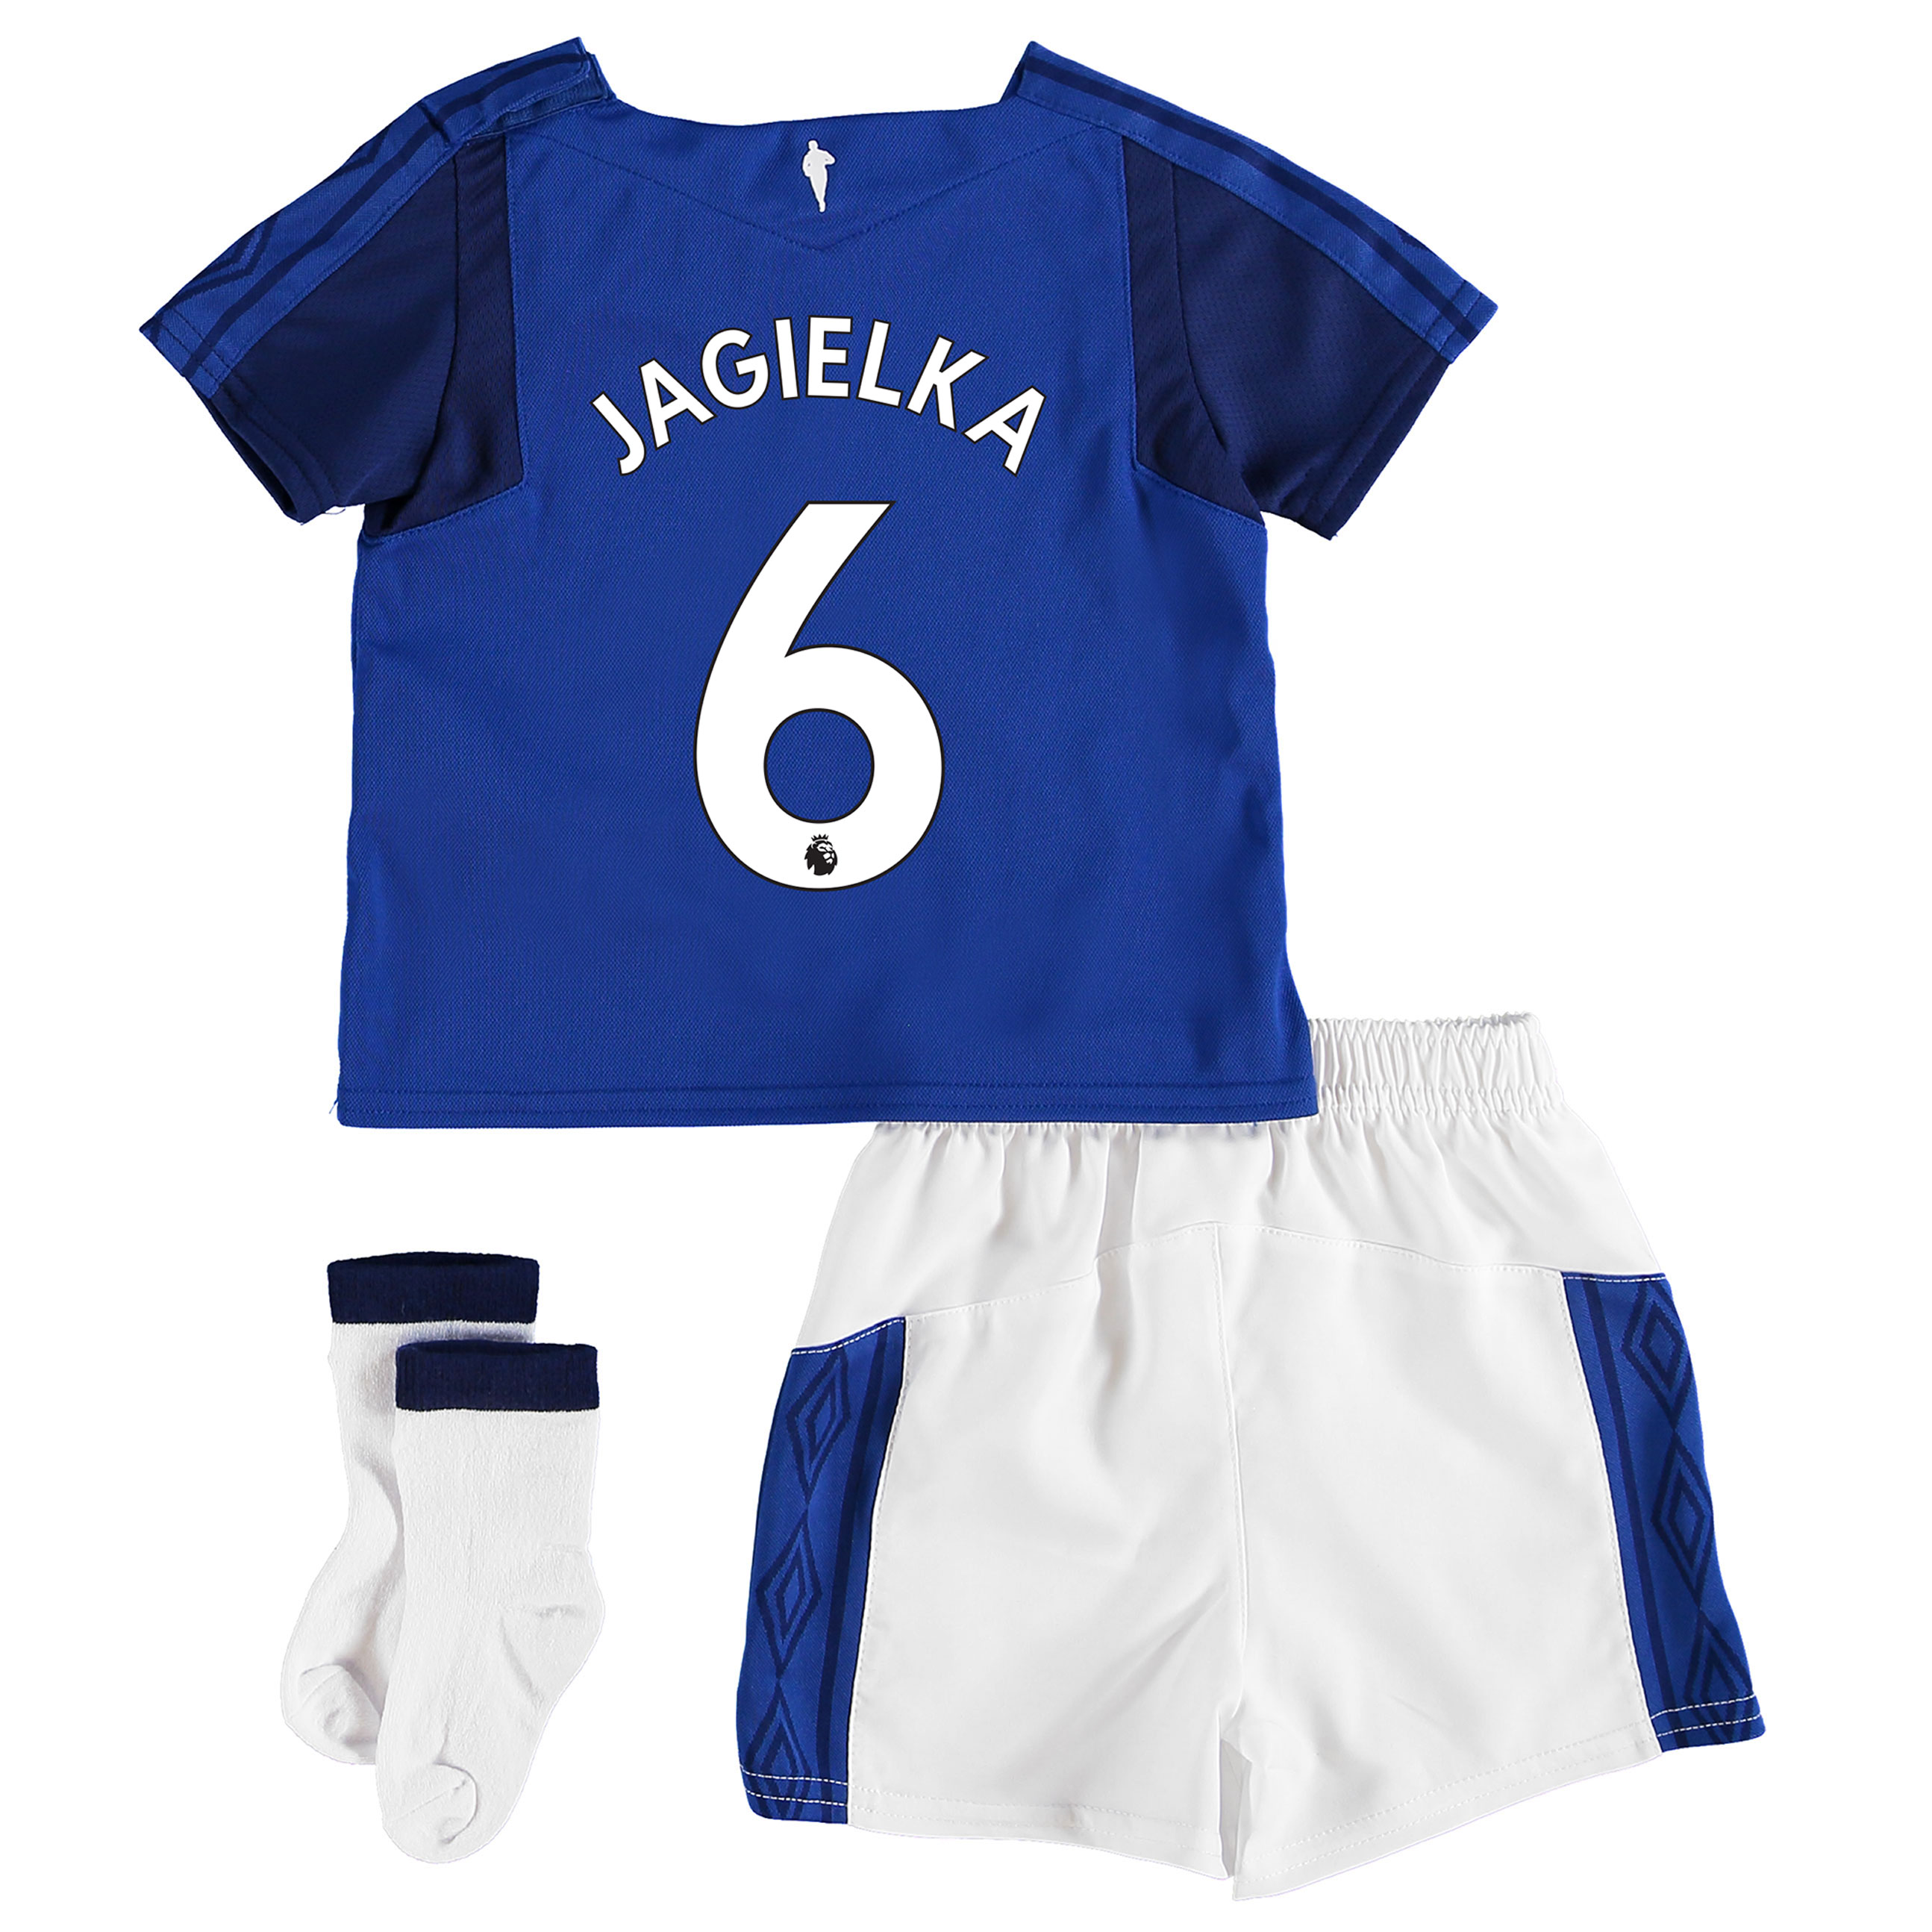 Everton Home Baby Kit 2017/18 with Jagielka 6 printing